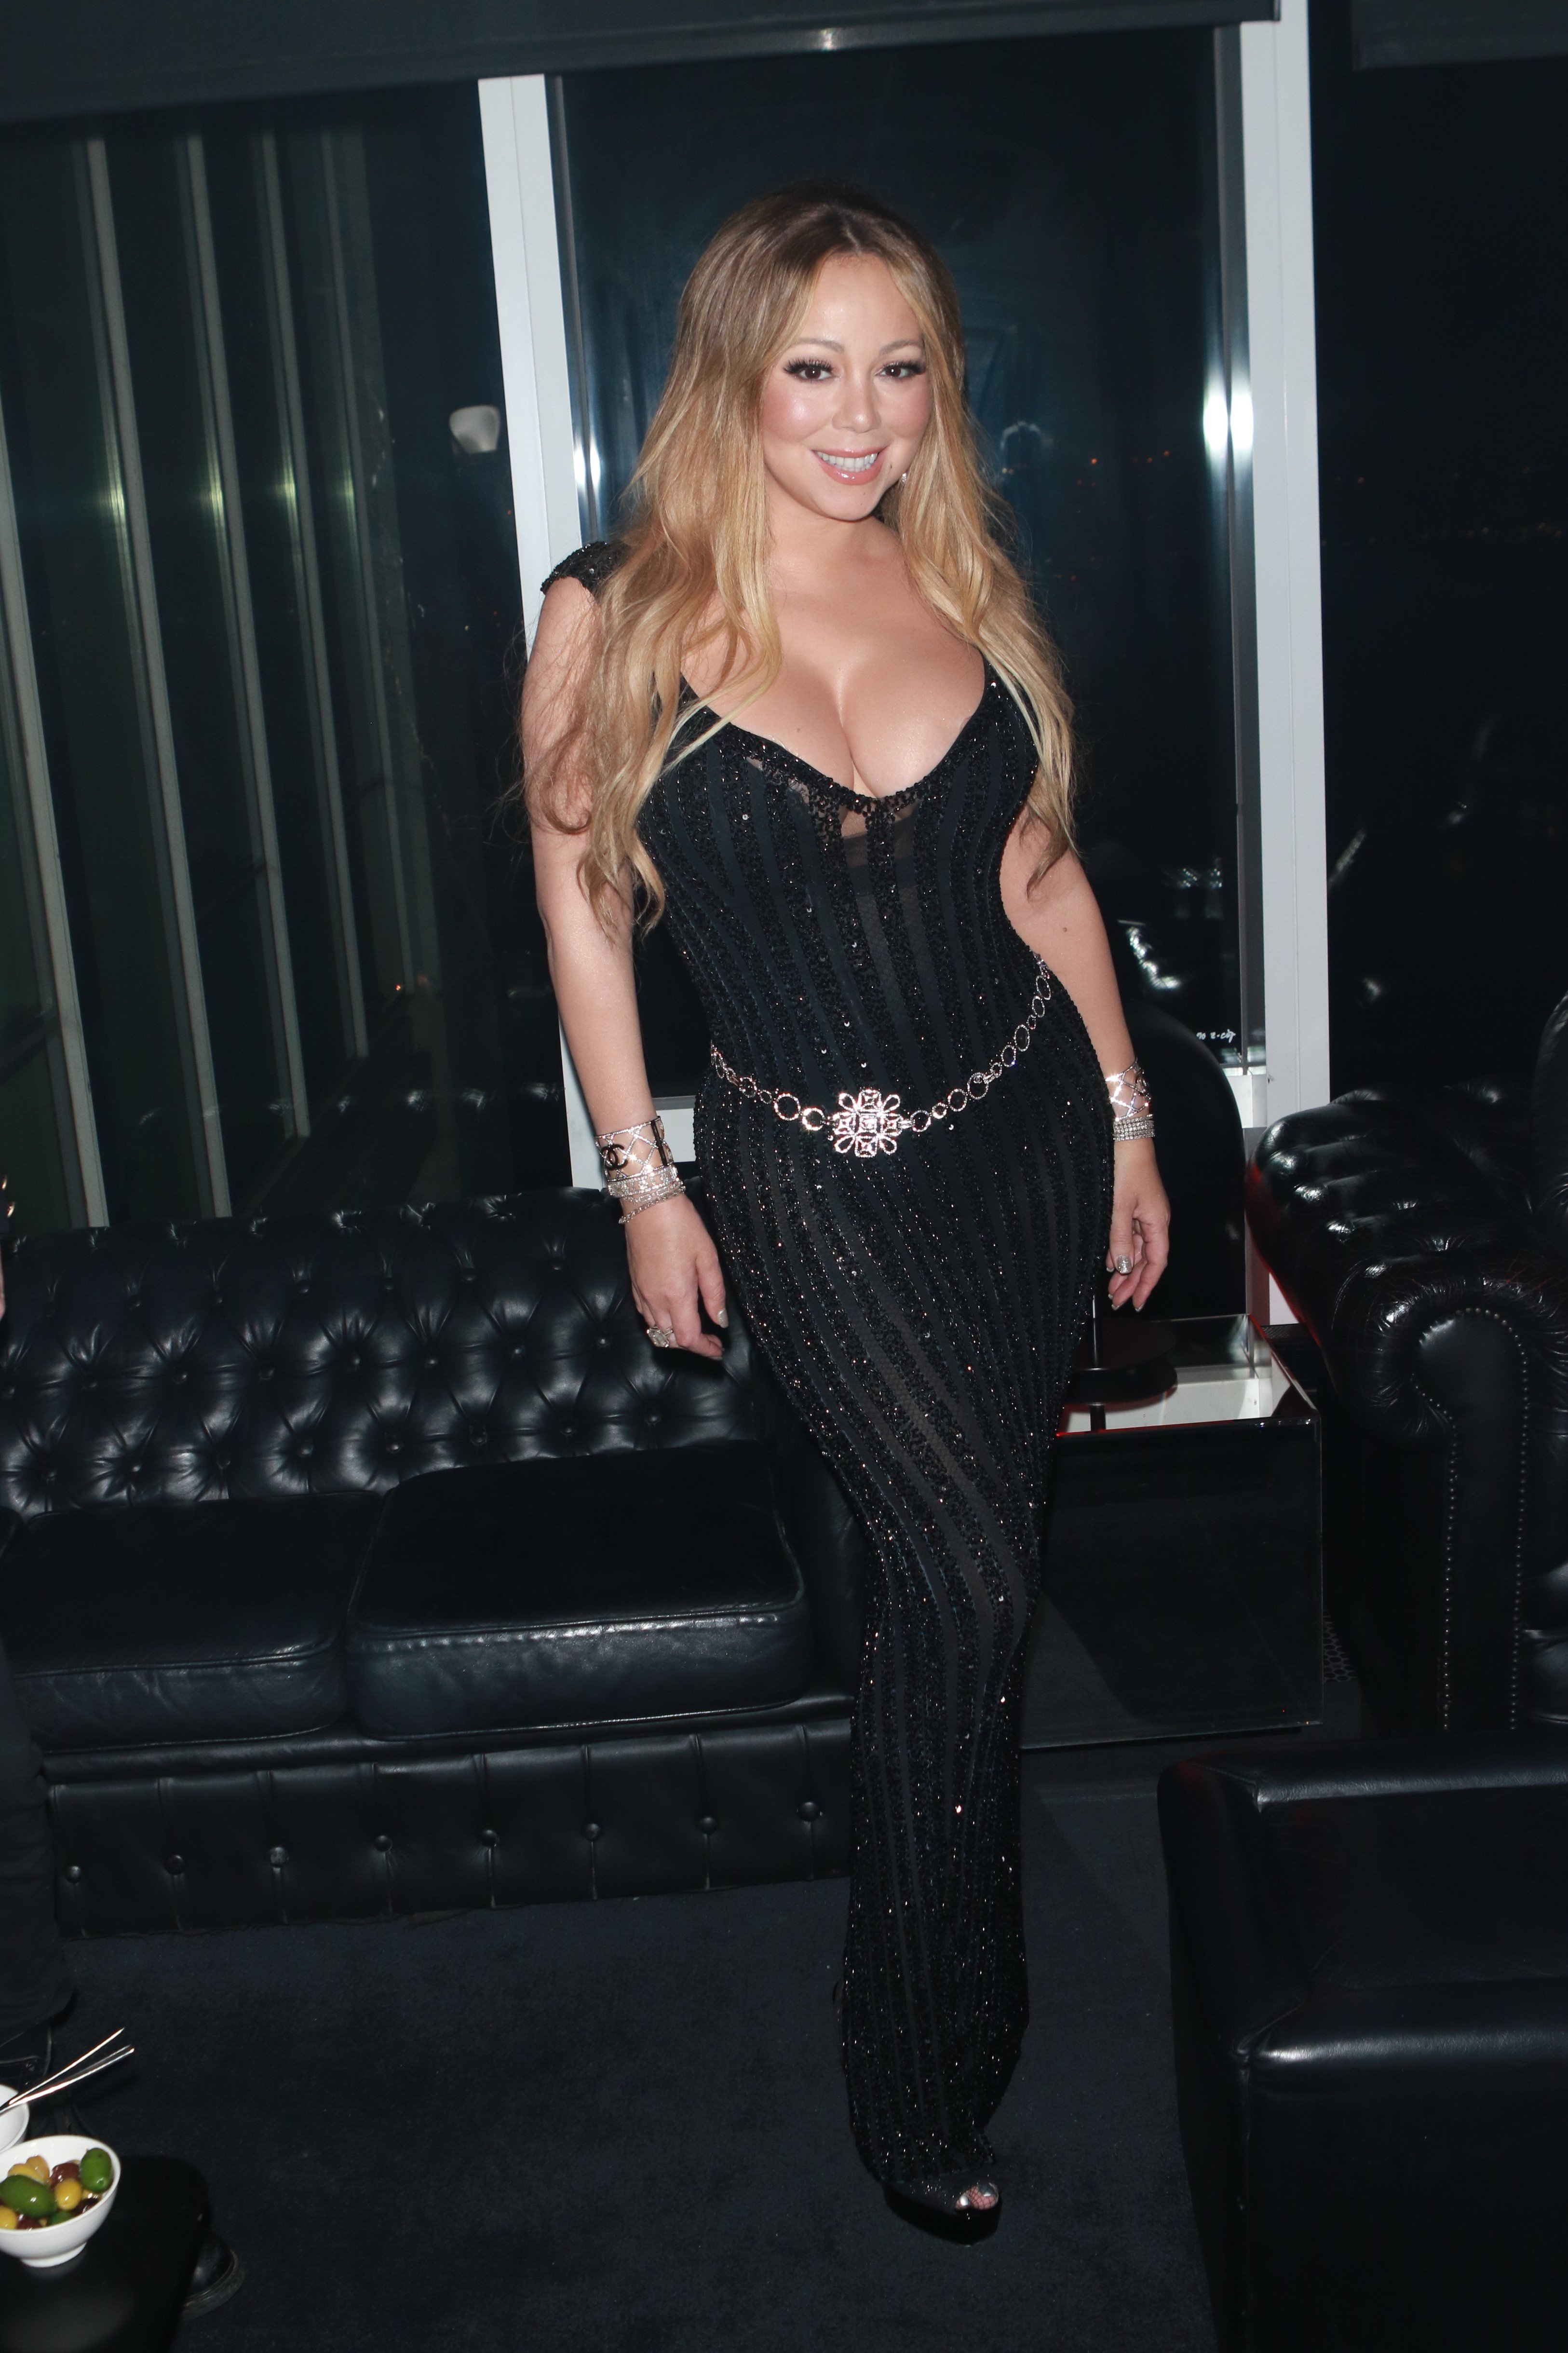 , New York, NY - 10/23/17 Mariah Carey at the after party for the V Magazine Dinner in honor of Karl Lagerfeld Le Bain.  -PICTURED: Mariah Carey -, Image: 353760222, License: Rights-managed, Restrictions: , Model Release: no, Credit line: Profimedia, INSTAR Images